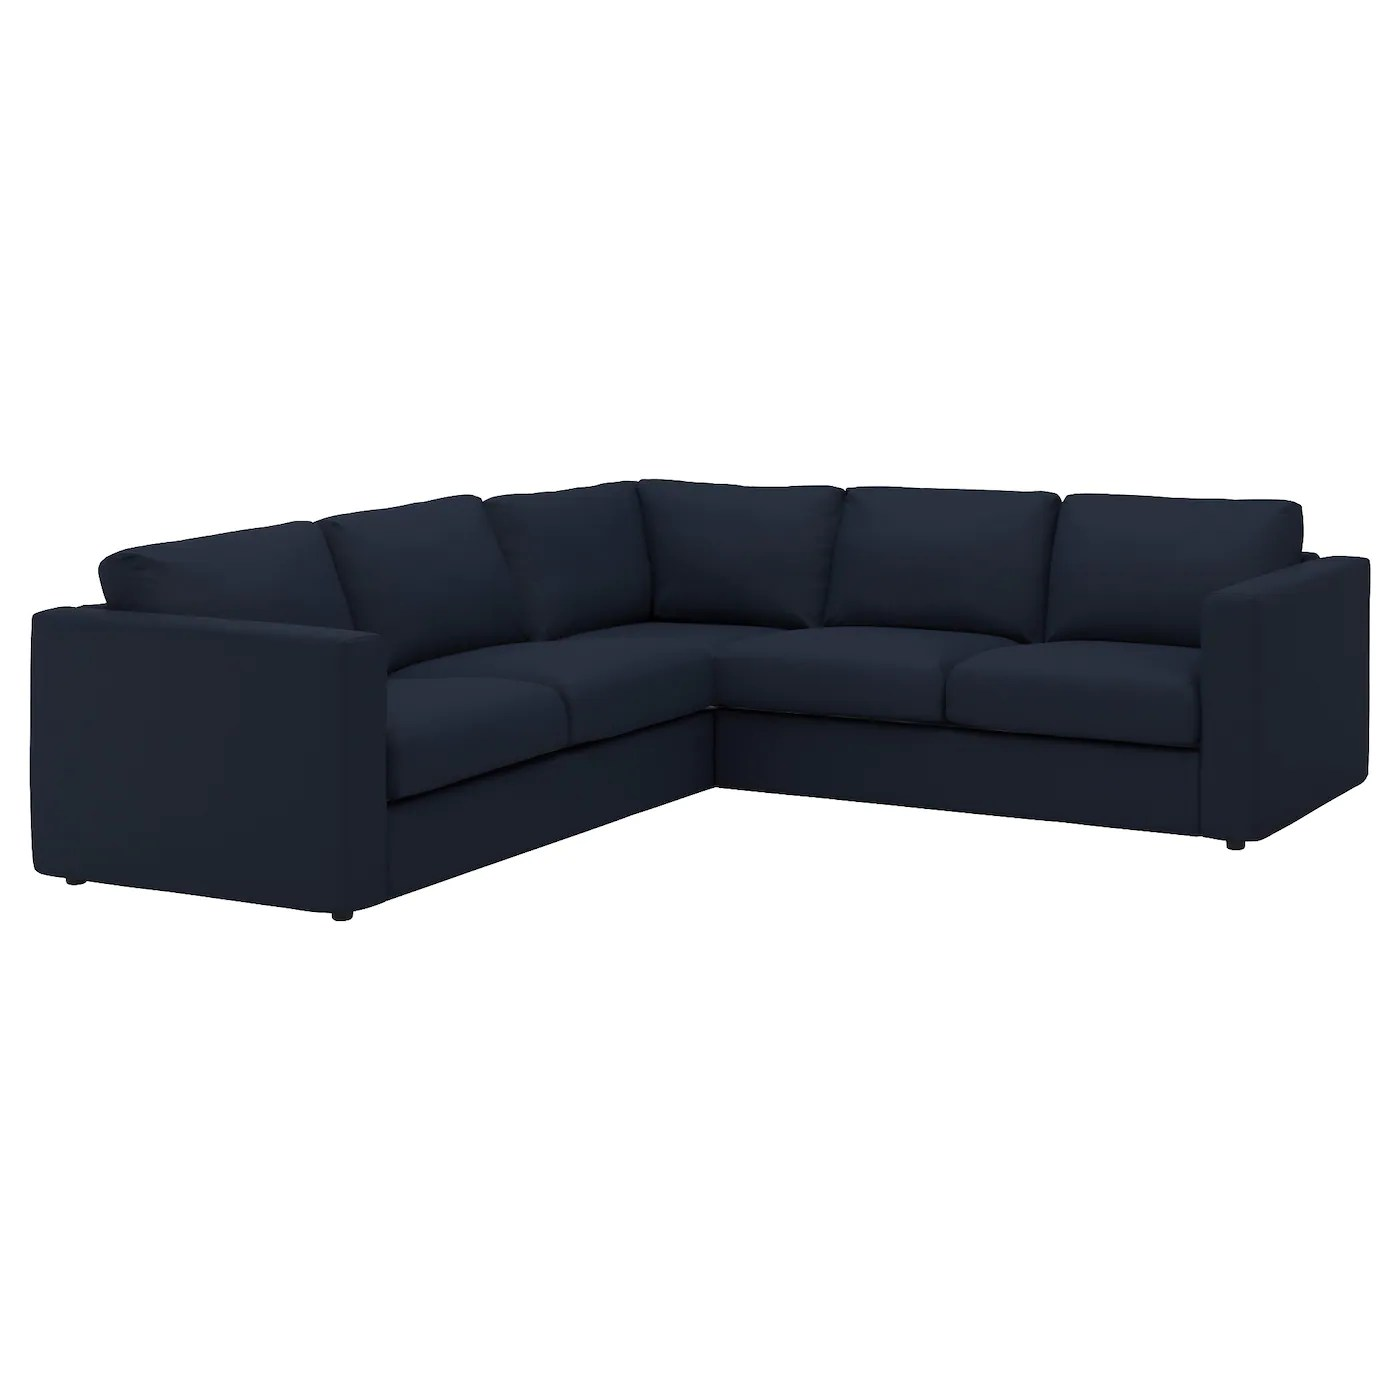 blue striped sofa uk small 2 pc sectional fabric sofas ikea vimle corner 4 seat 10 year guarantee read about the terms